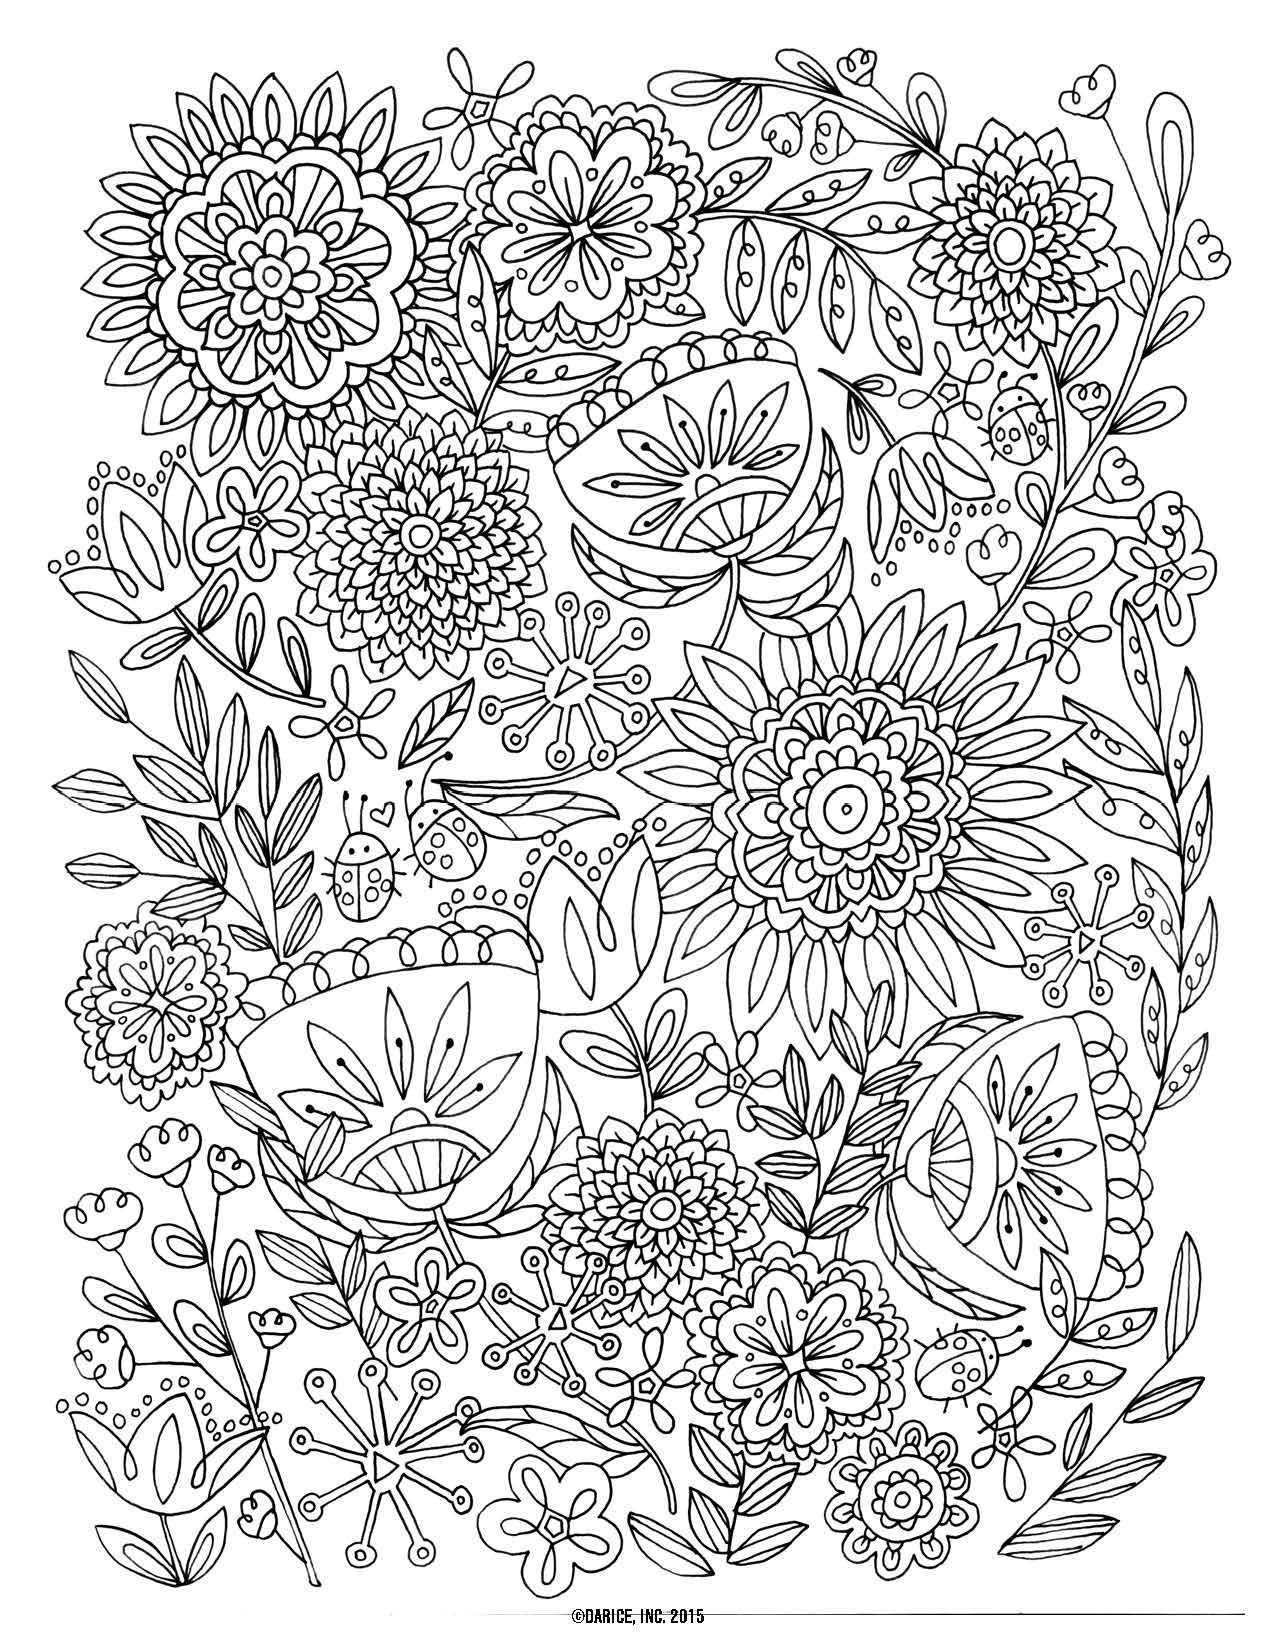 free printable paisley coloring pages adult patterns paisley 5 coloring pages printable free paisley coloring printable pages